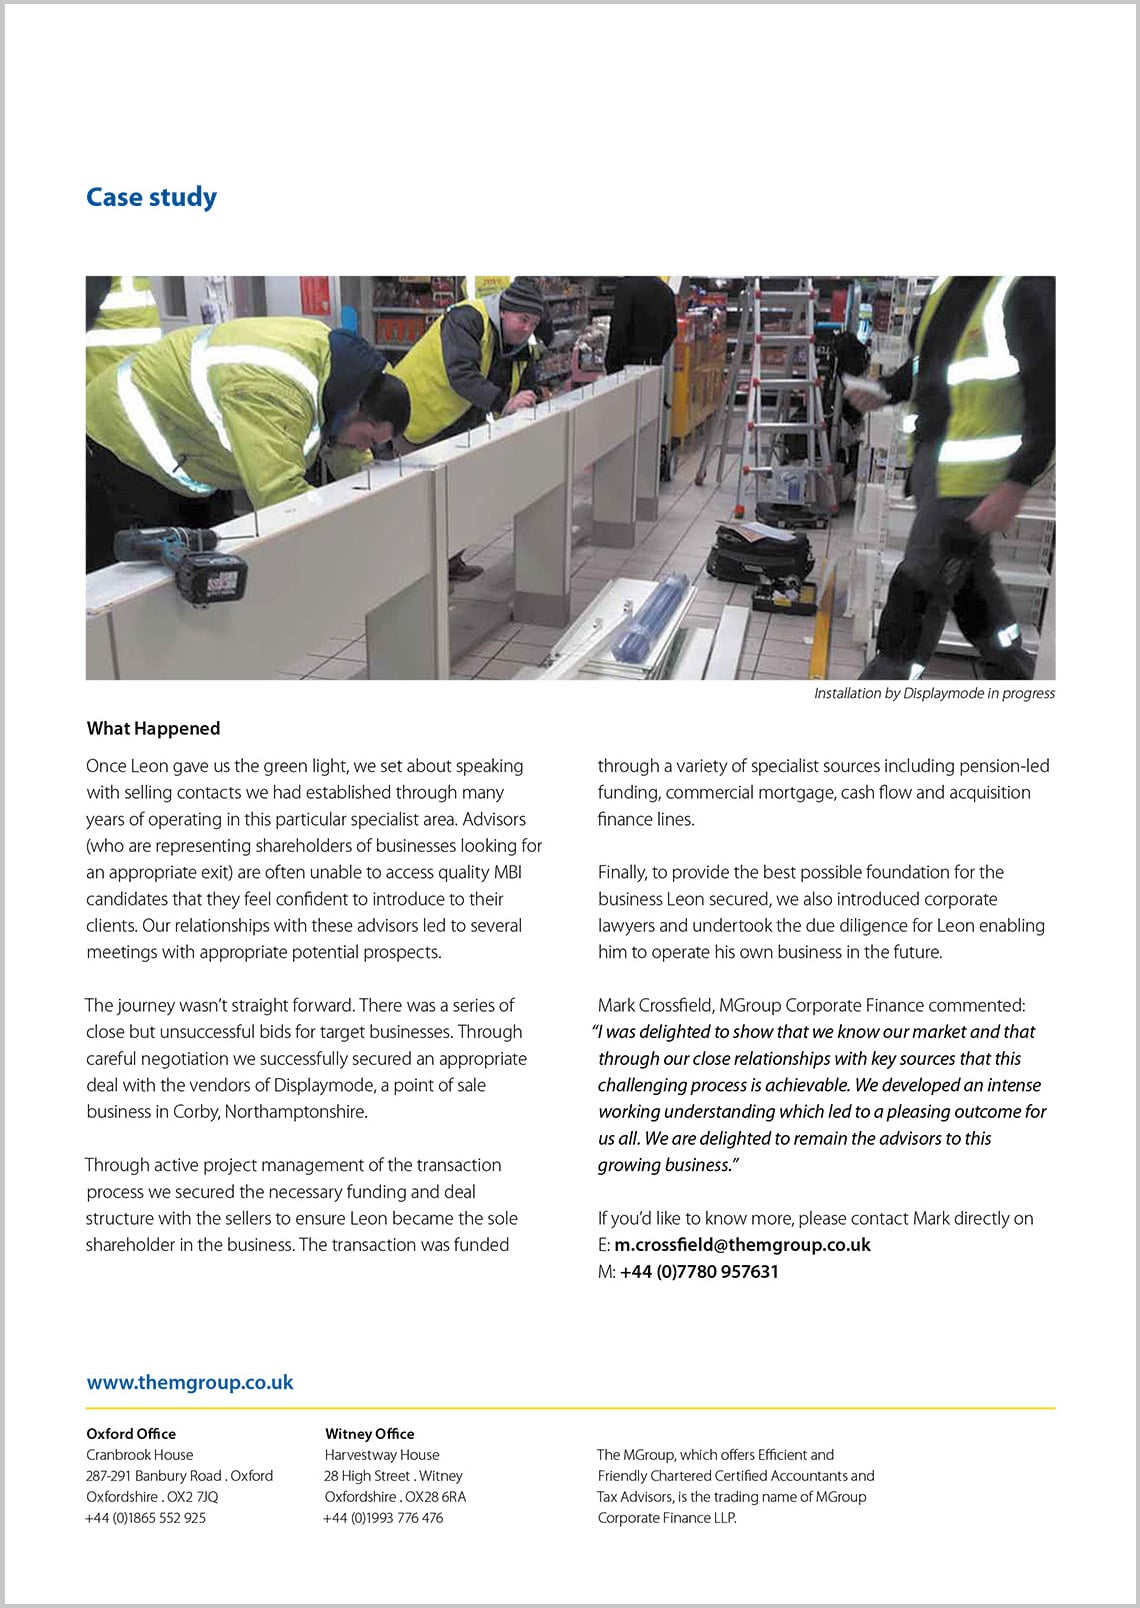 DisplayMode-CaseStudy-Page-2